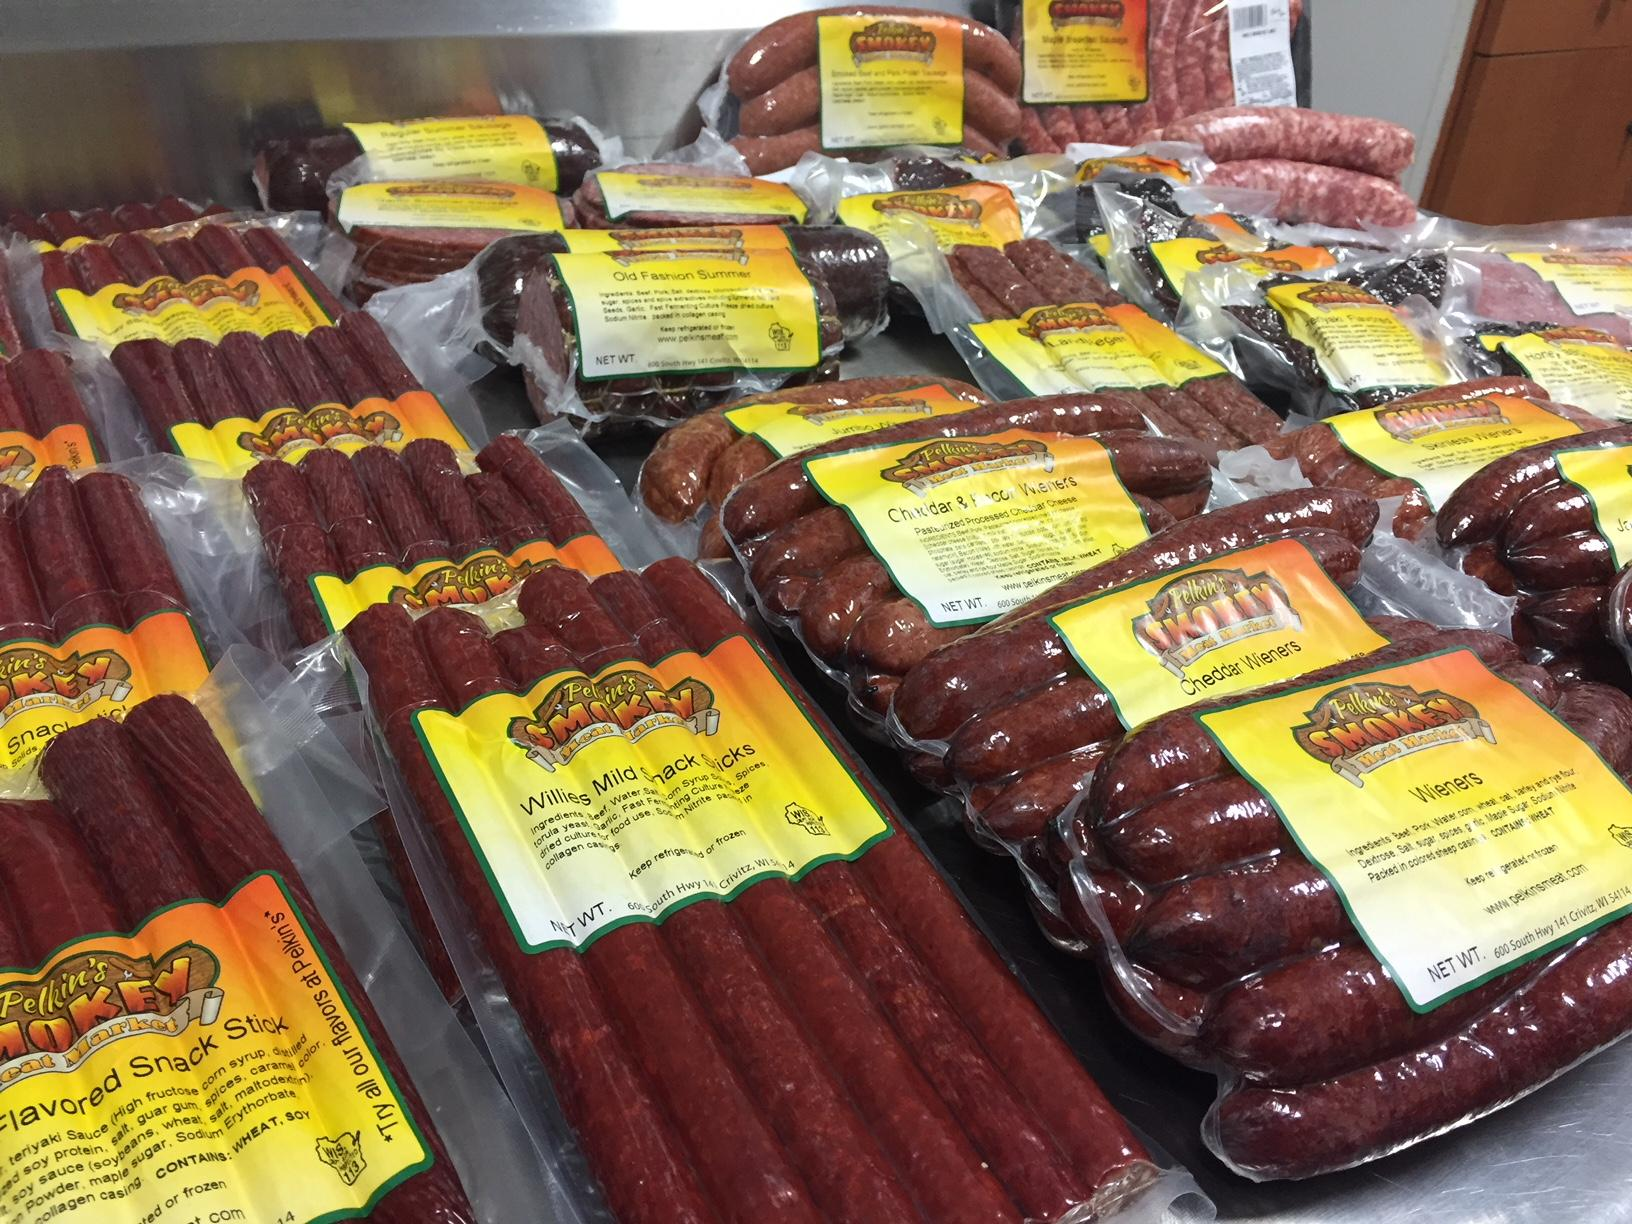 Numerous products offered from Pelkin's Smokey Meats in Crivitz, November 18, 2017, (WLUK/Lauren Kalil)<p></p>